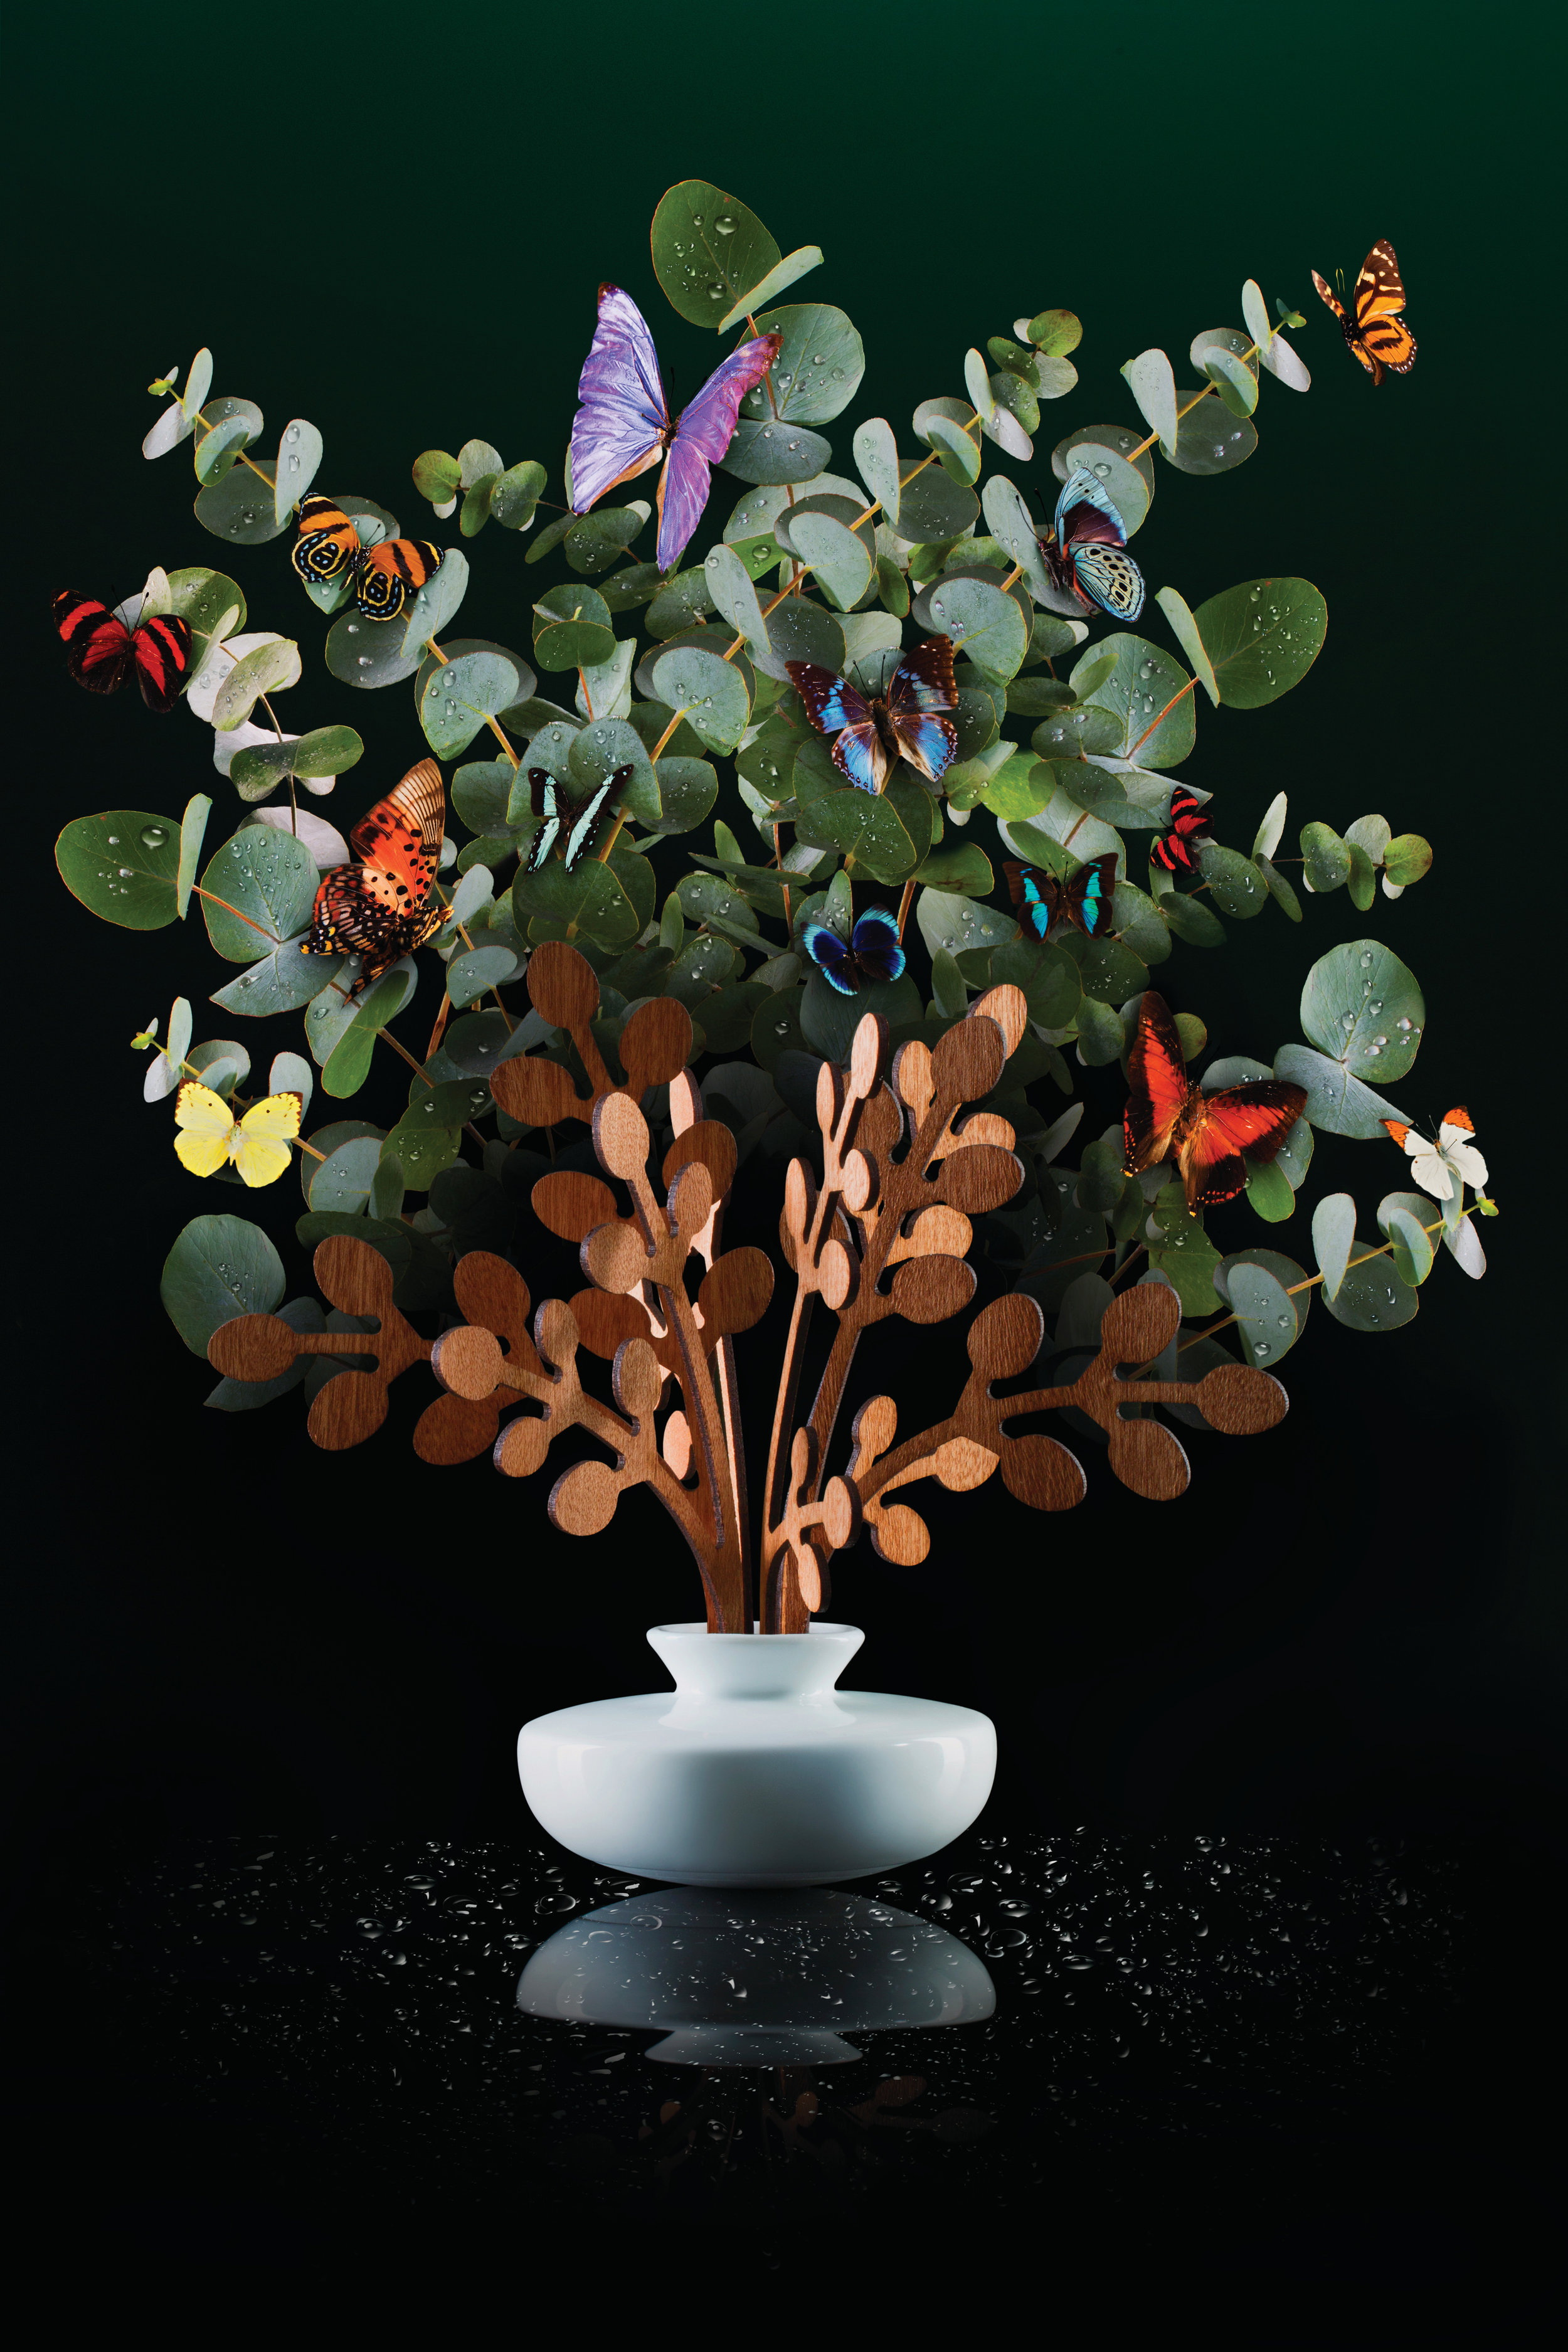 ALES_18_Brrr leaf fragrance diffuser in porcelain, leaves in mahogany, by Marcel Wanders for Alessi, £59.jpg